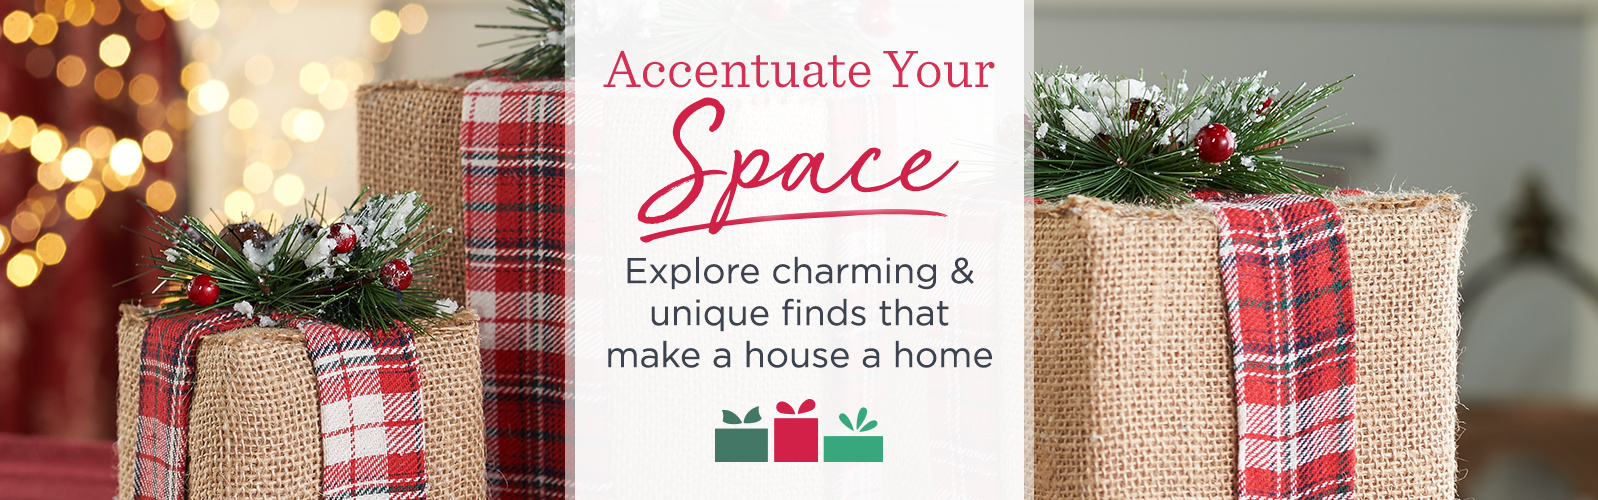 Accentuate Your Space - Explore charming & unique finds that make a house a home